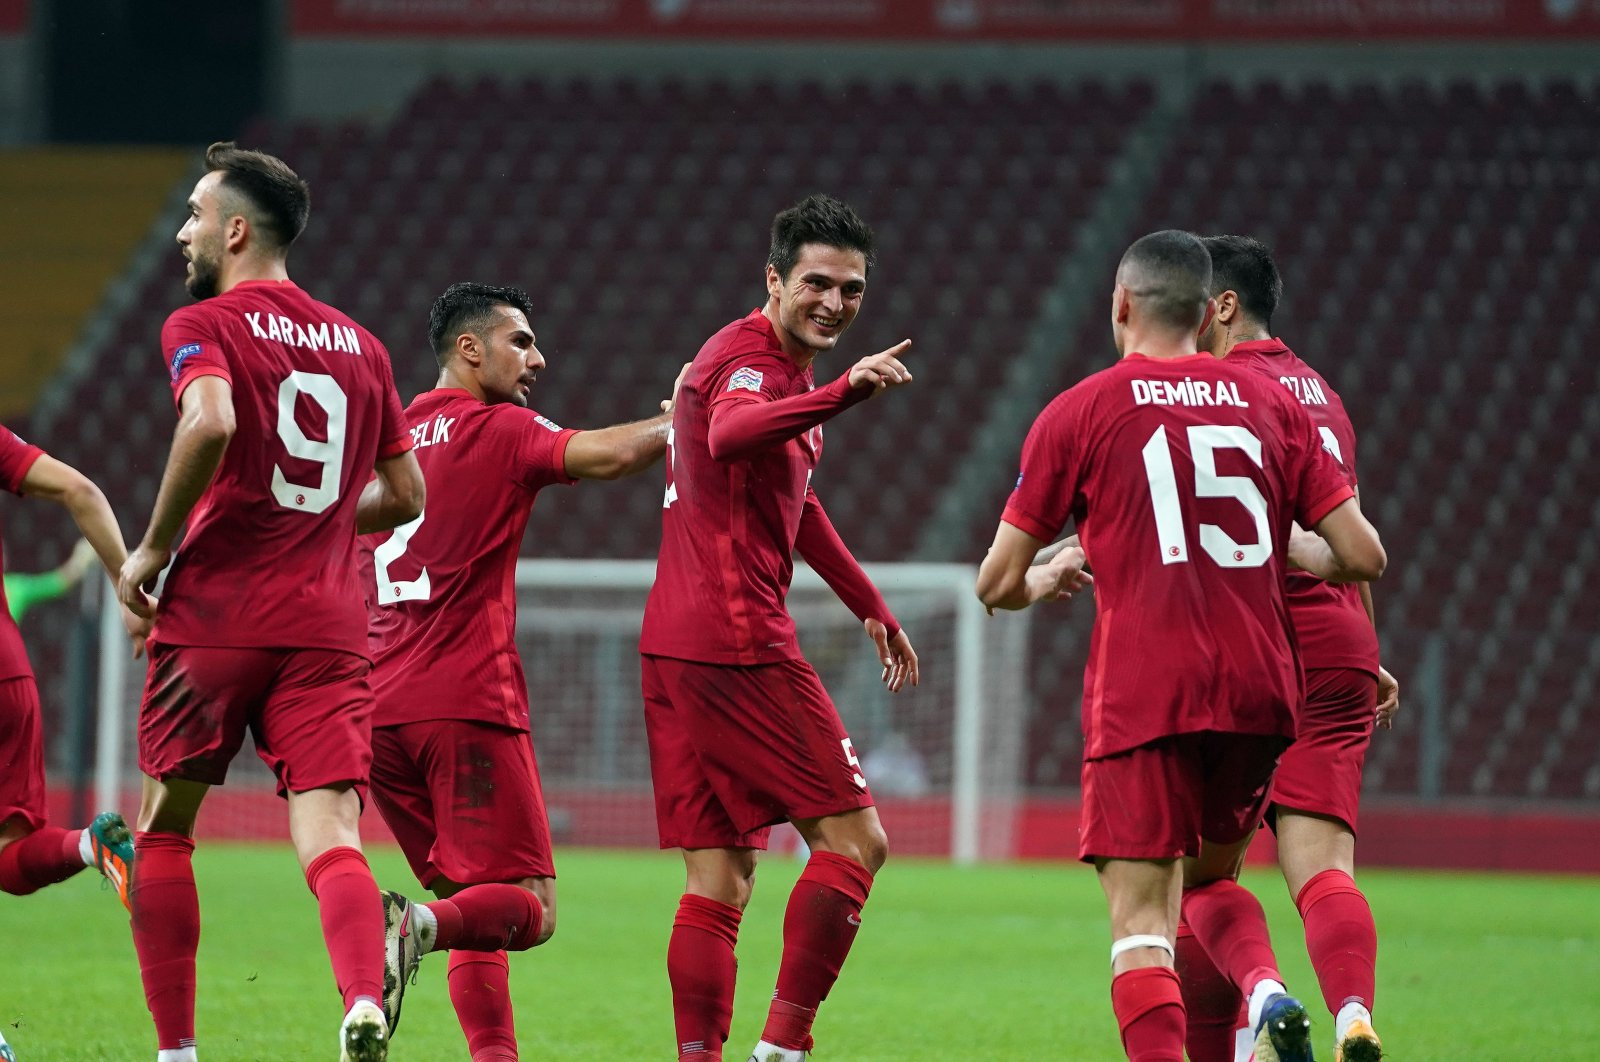 Turkey players celebrate a goal against Serbia during a UEFA Nations League match, in Istanbul, Turkey, Oct. 14, 2020. (IHA Photo)